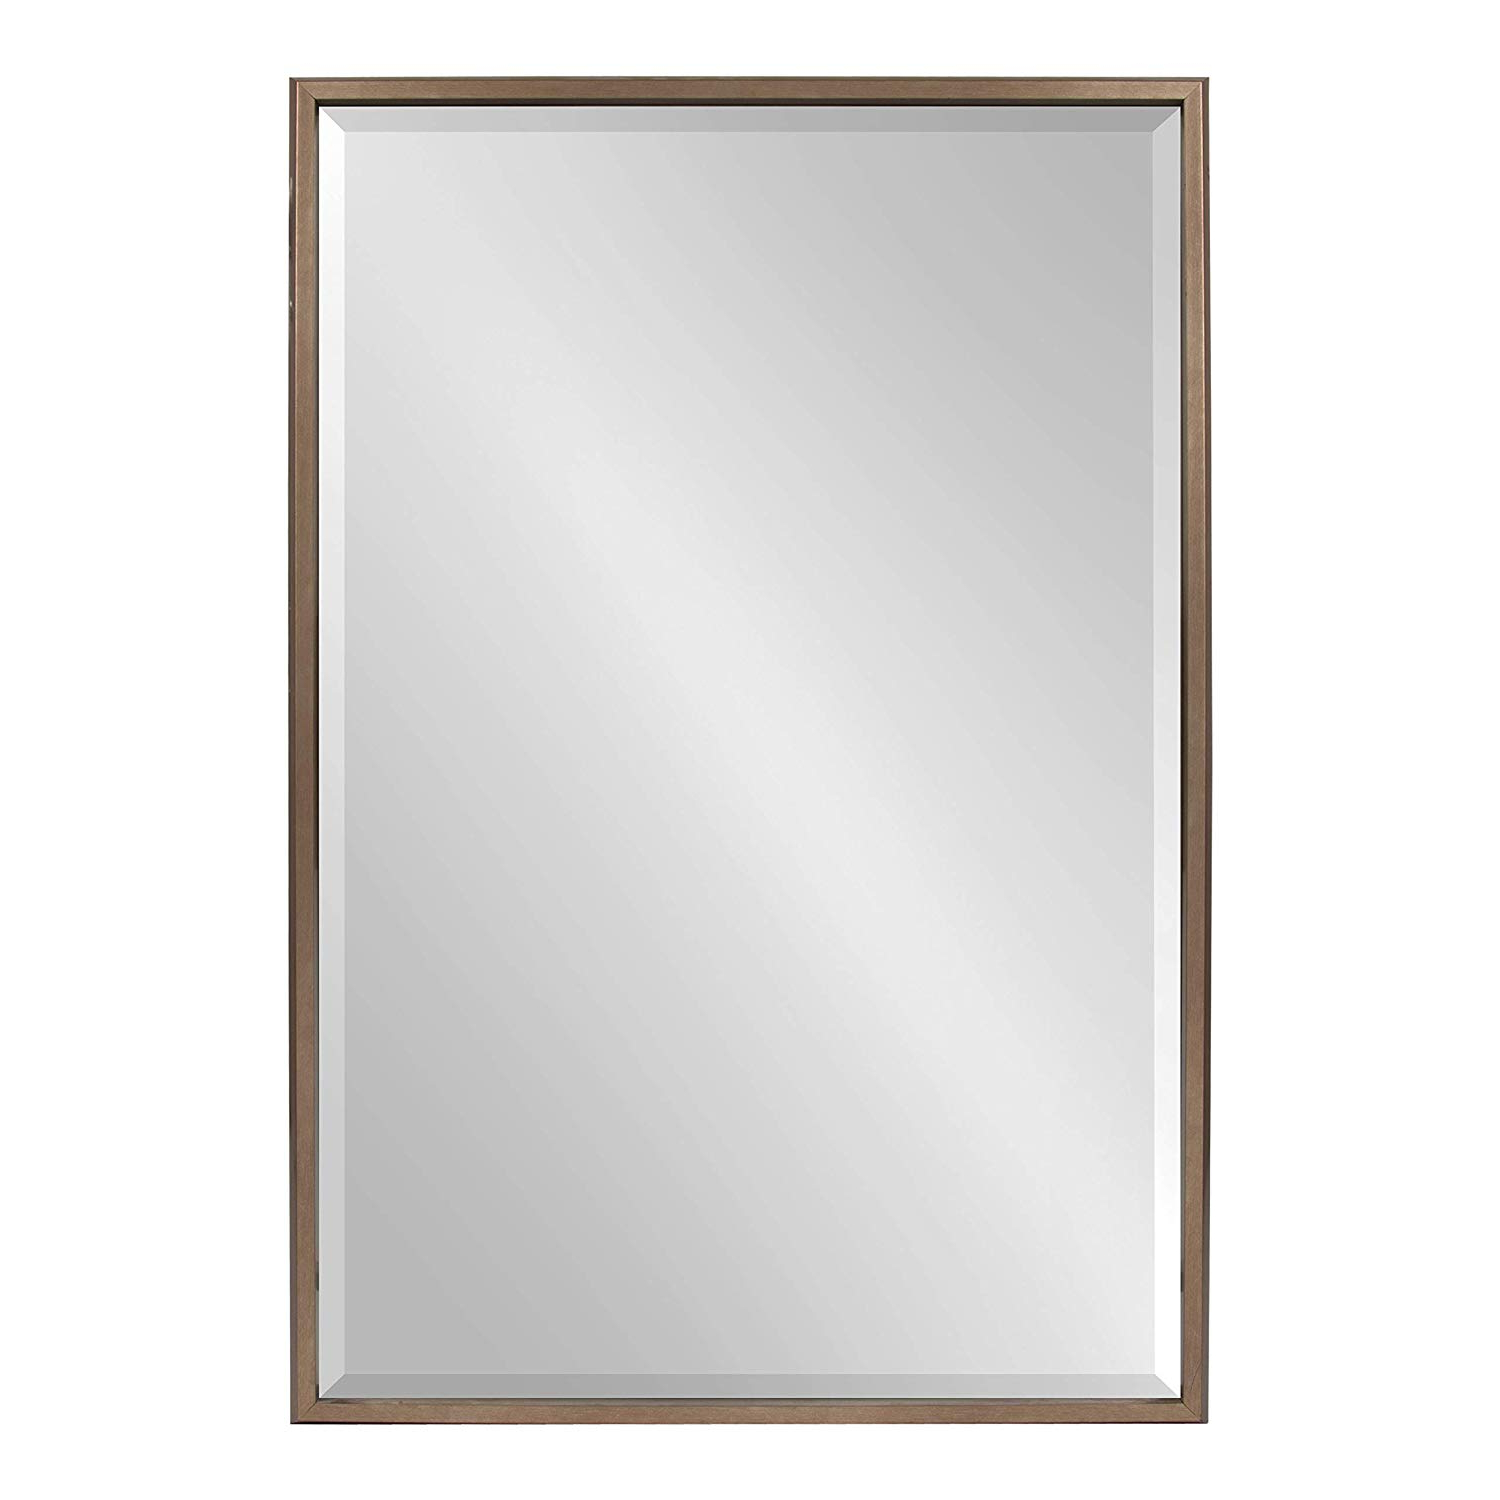 Glam Beveled Accent Mirrors Inside 2019 Amazon: Kate And Laurel Blake Modern Glam Framed Beveled Wall (Gallery 15 of 20)